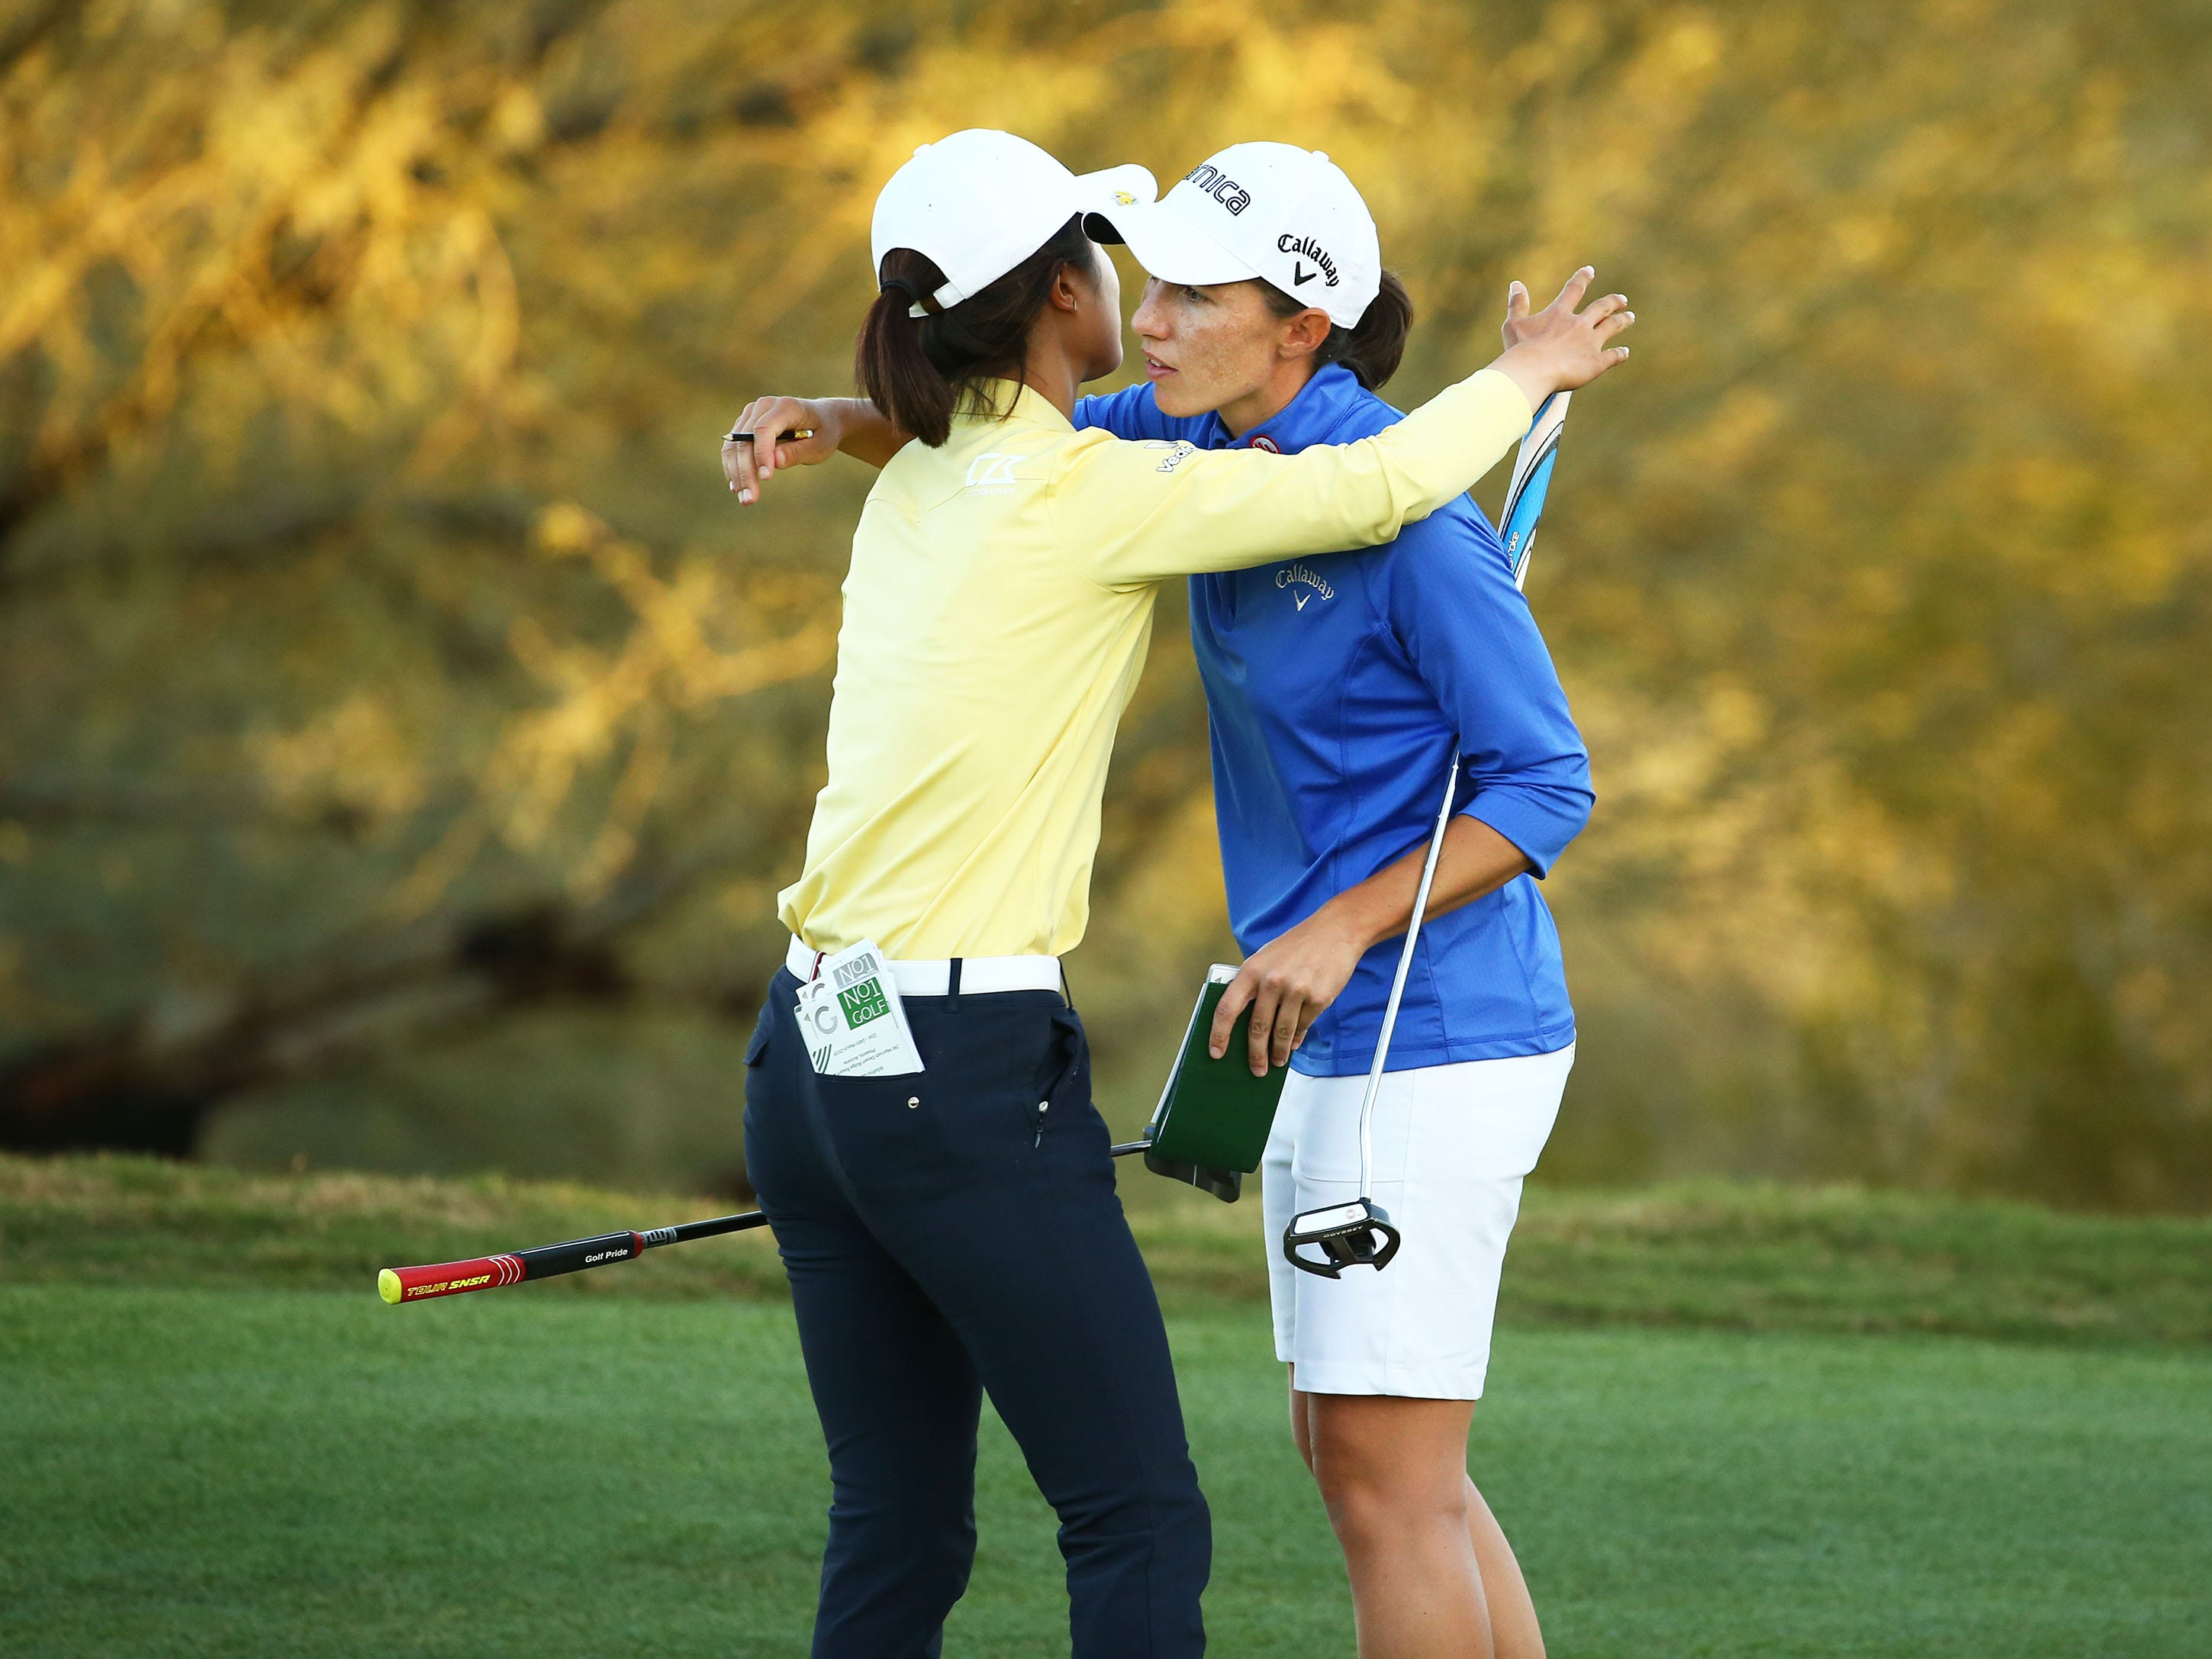 Yu Lia of China and Carlota Ciganda of Spain hug after finishing their final round at the Bank of Hope Founders Cup on Mar. 24, 2019 at Wildfire Golf Club at JW Marriott in Phoenix, Ariz.